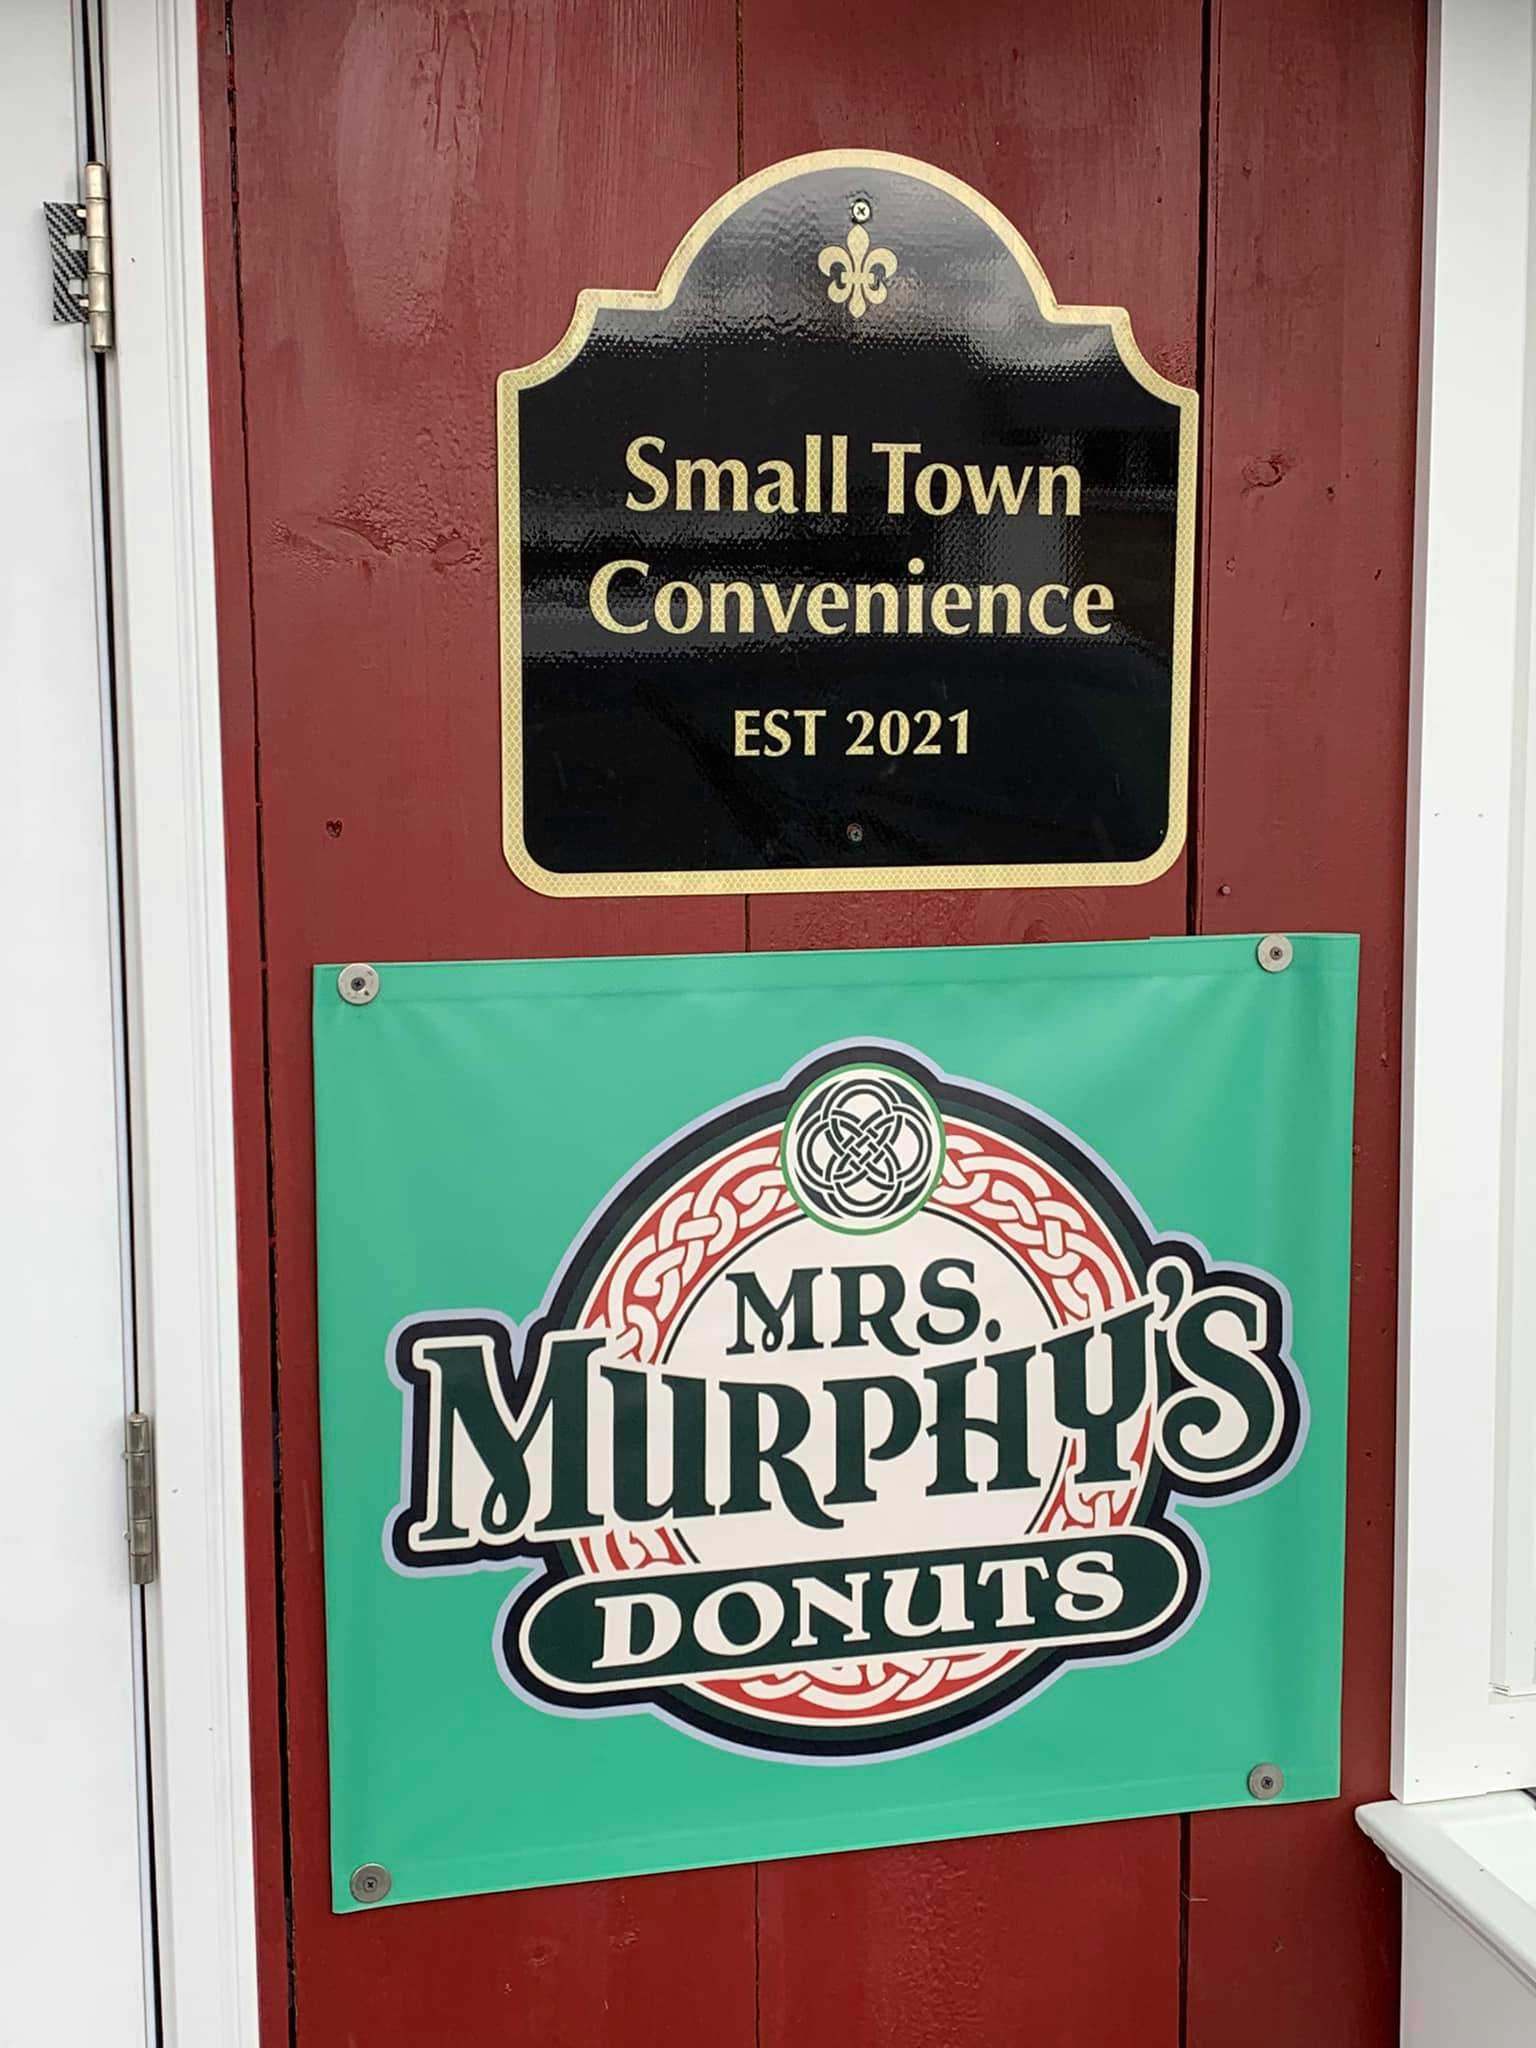 Small Town Convenience